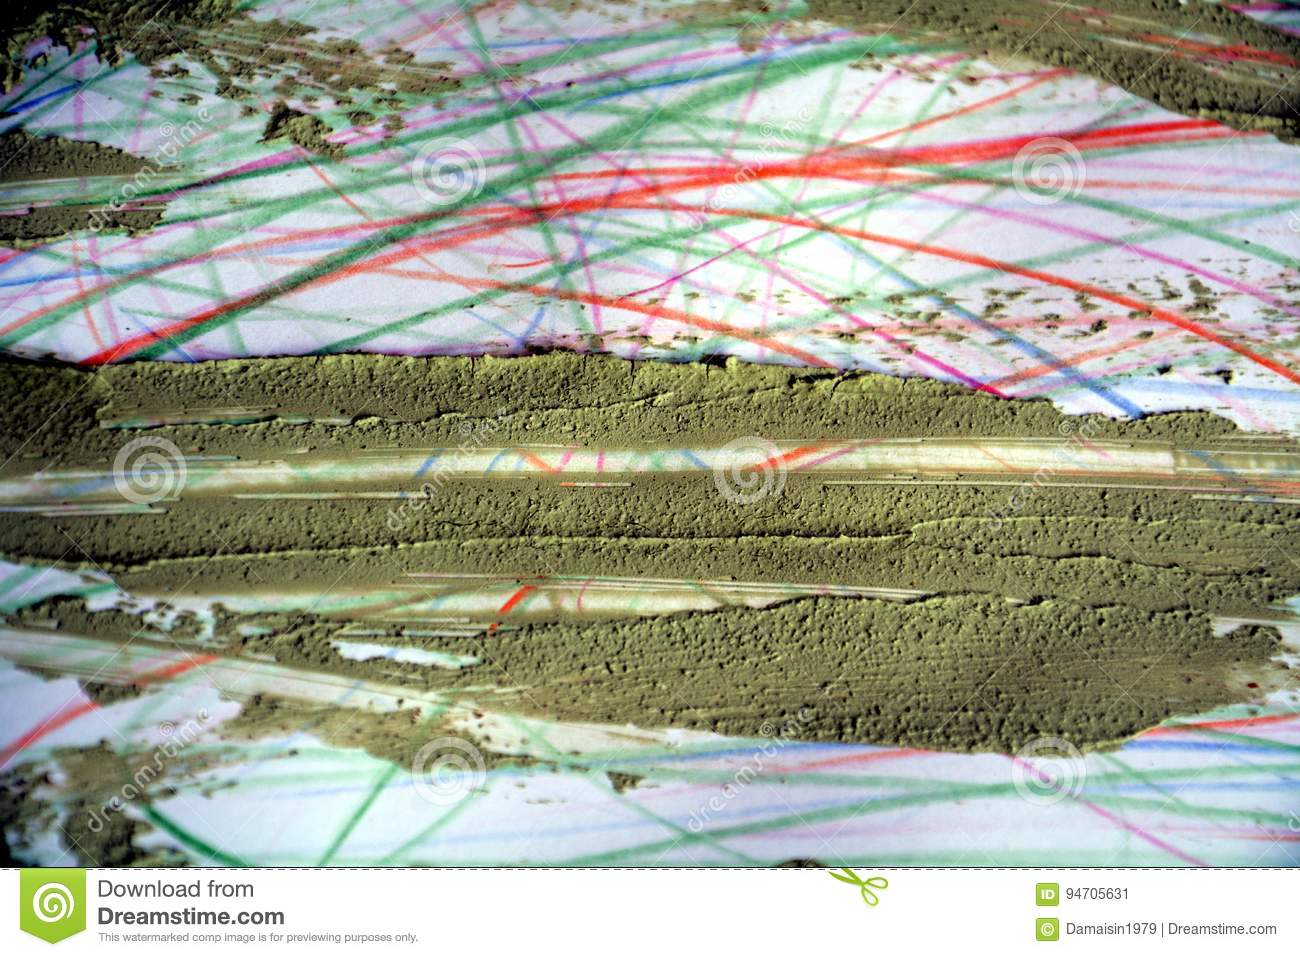 Dry mud on colorful lines, abstract background